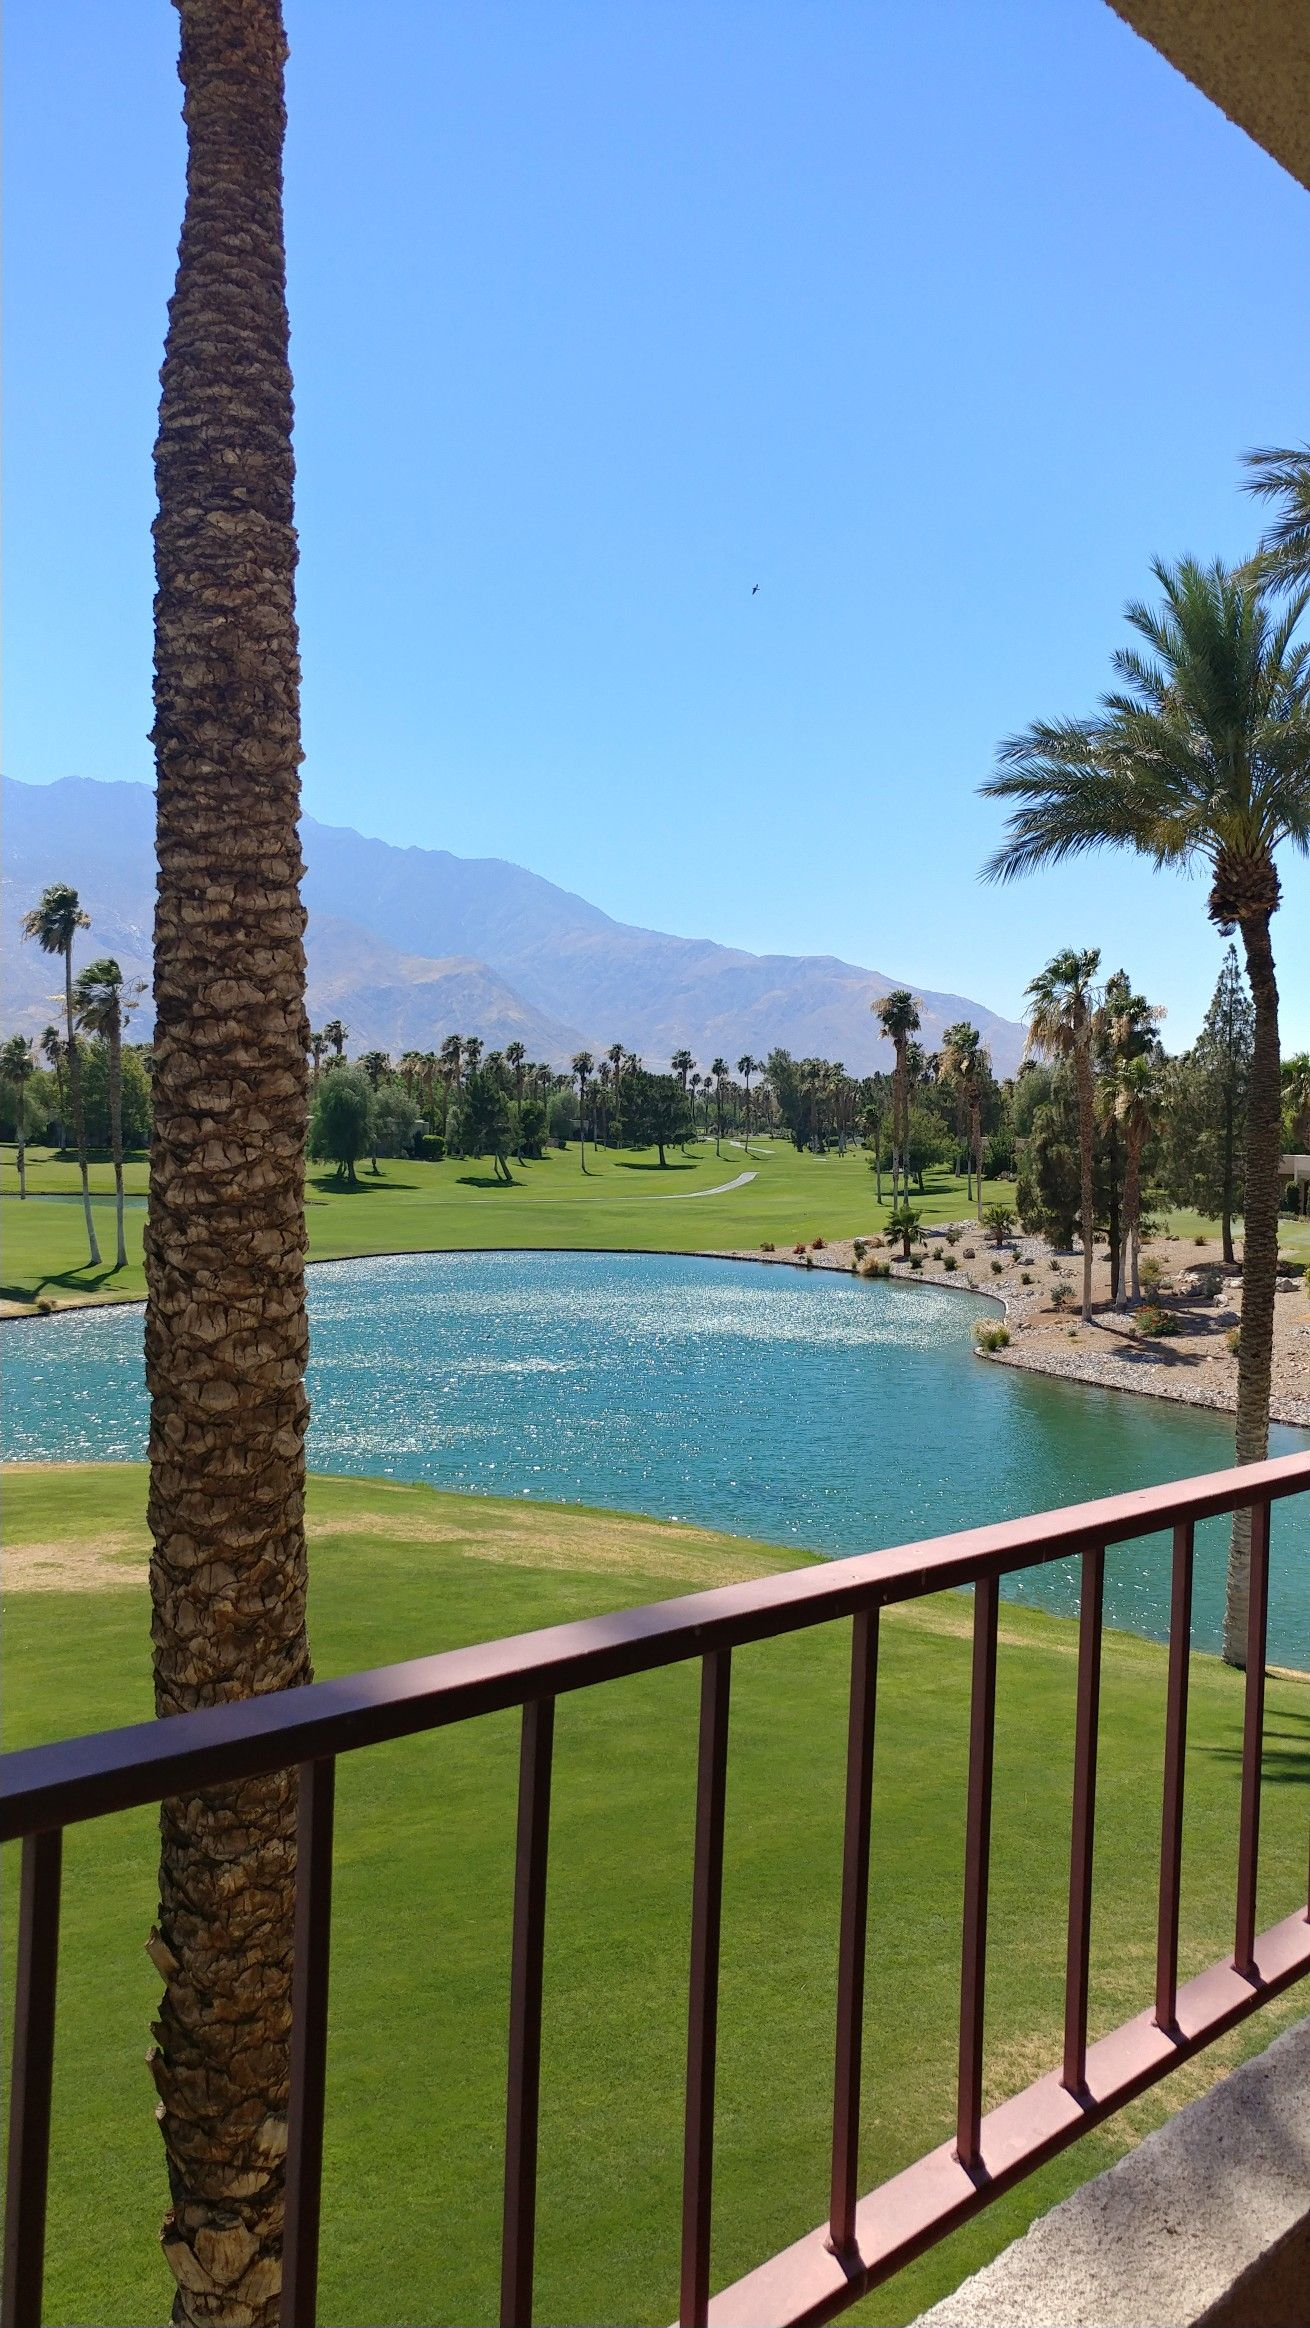 The Double Tree Hilton Golf Resort in Palm Springs is my